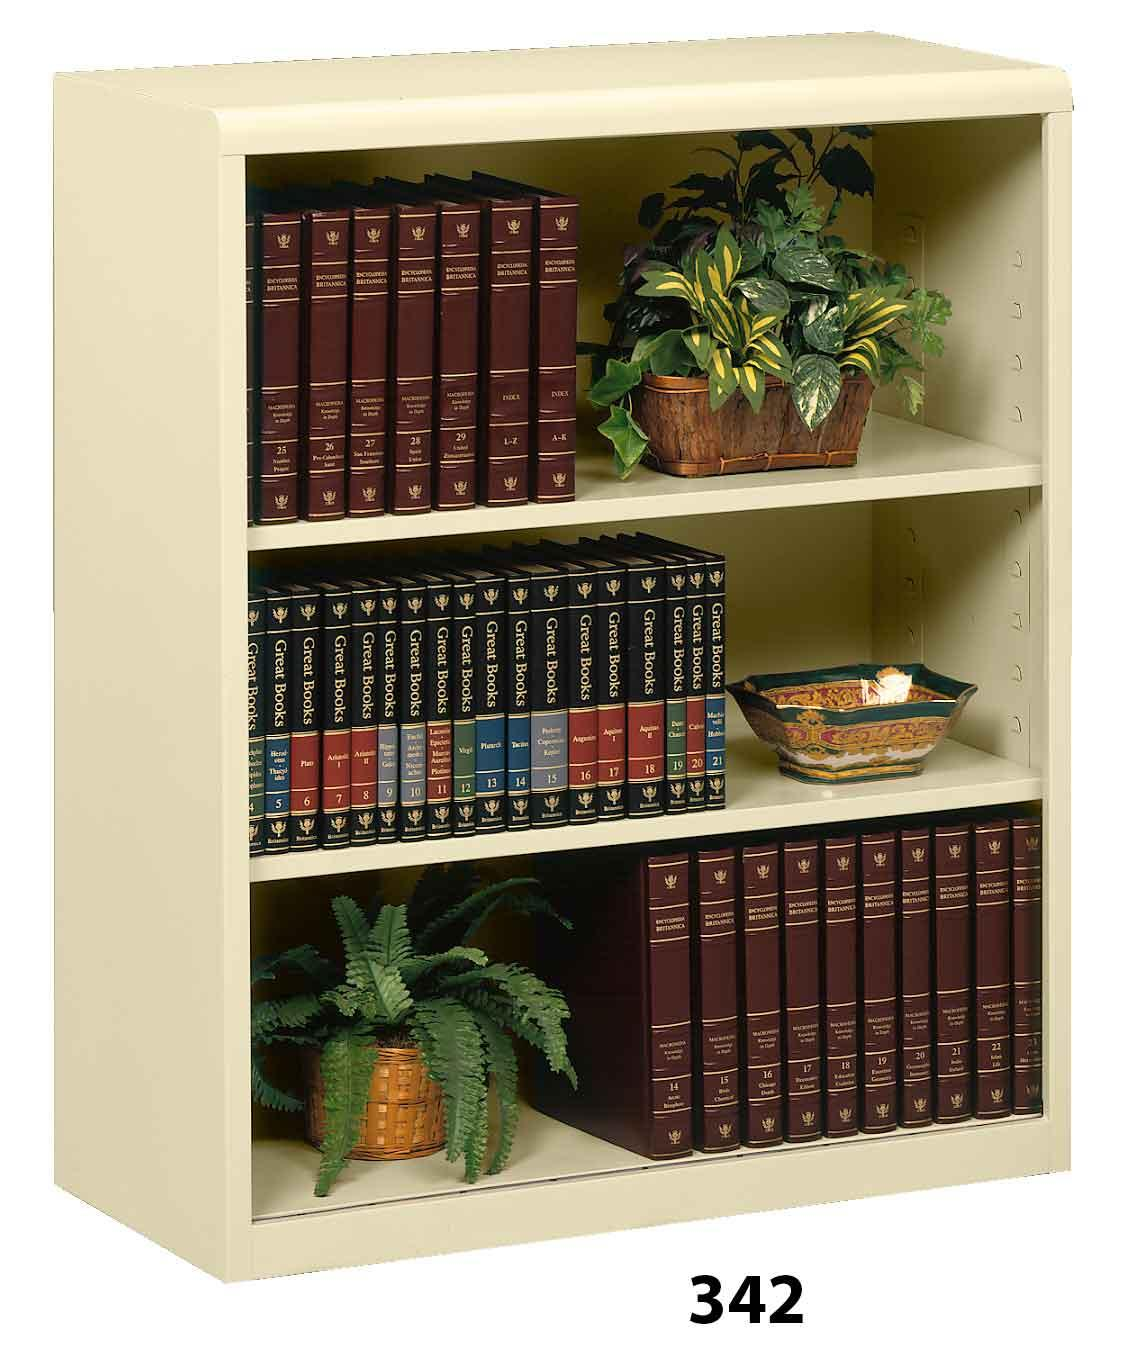 Tennsco 342 Executive Bookcases steel bookcase office